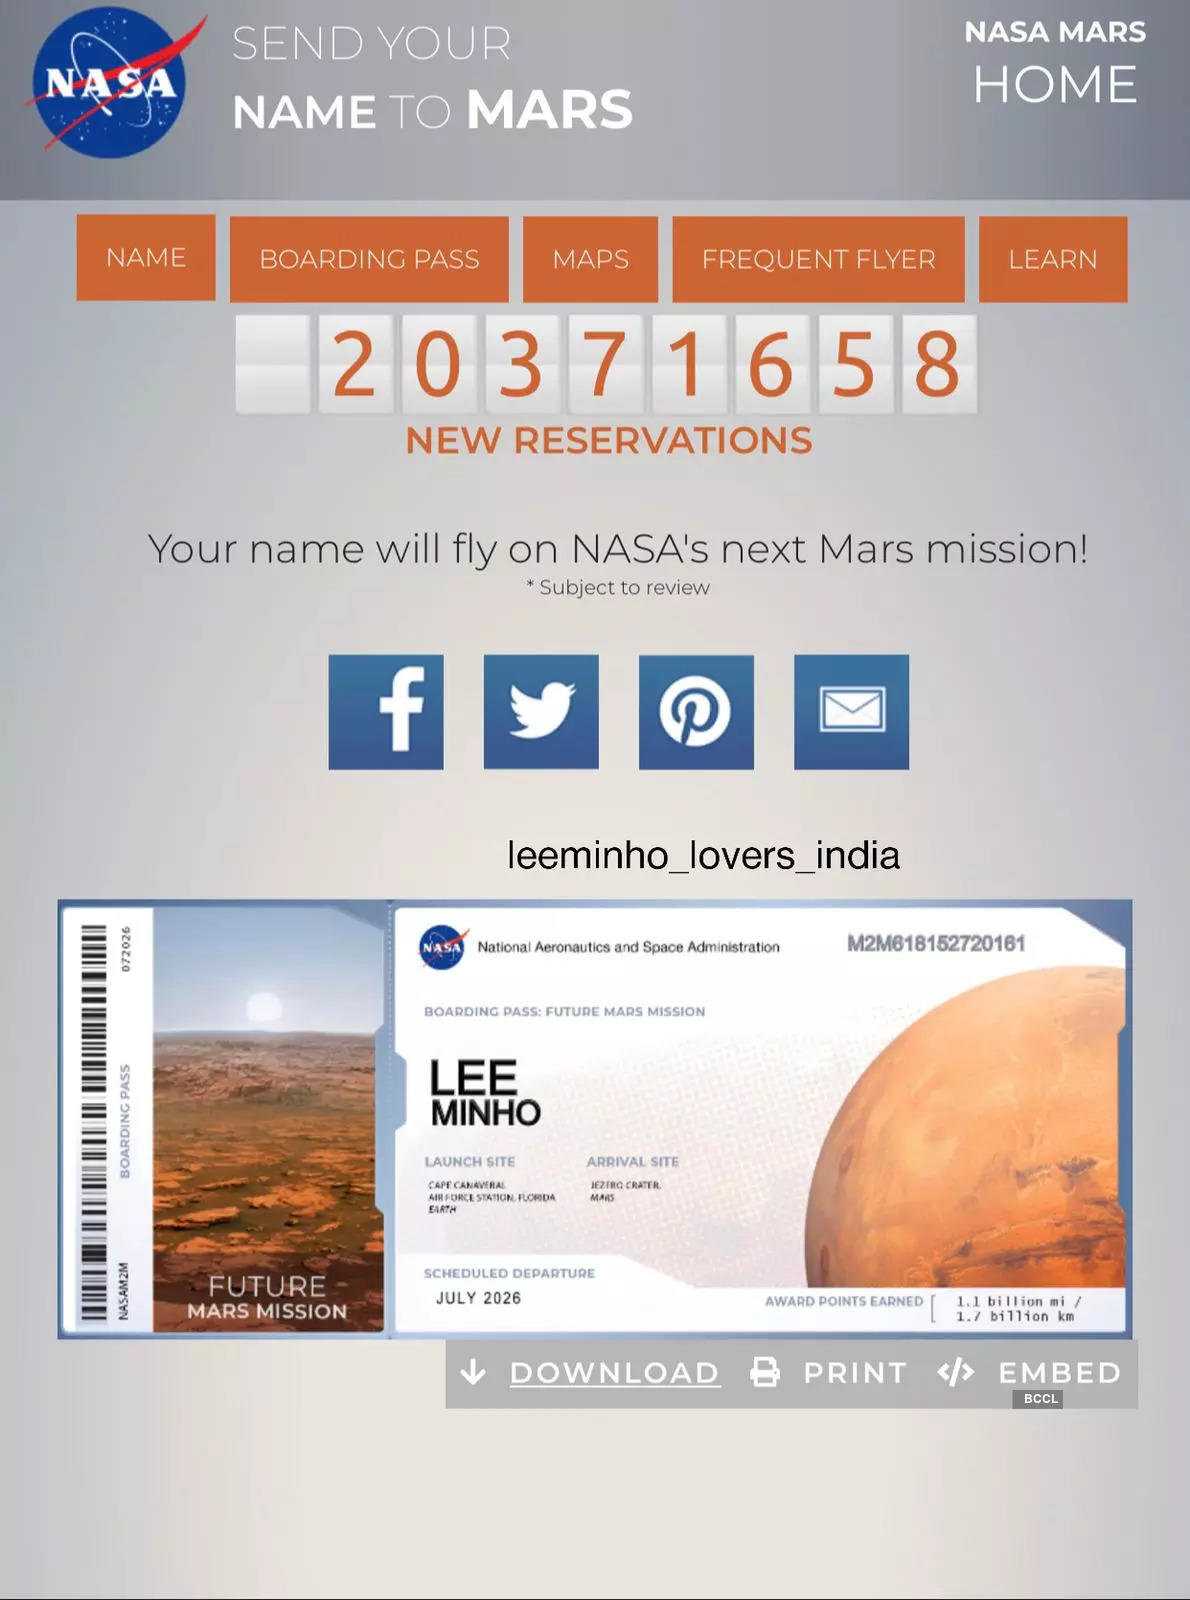 Indian Lee Min Ho fans send his name to Mars